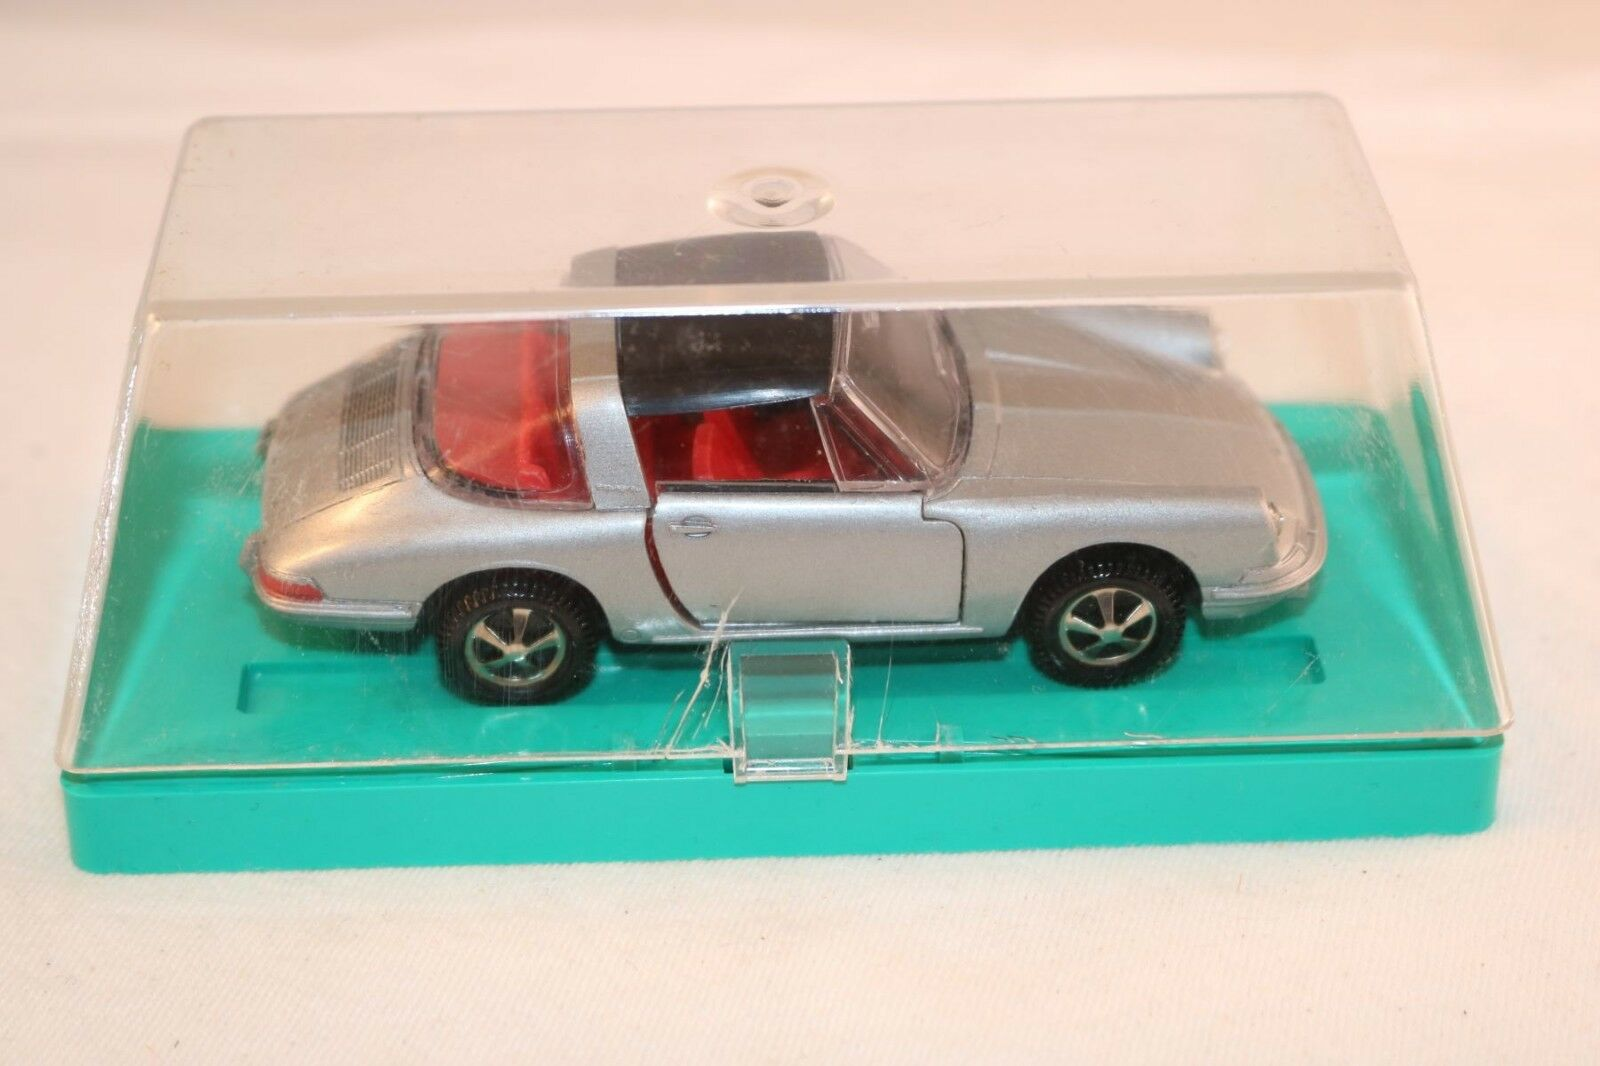 Marklin 1800 Porsche 911 Targa silber Gris mint in in in box all original condition 424054